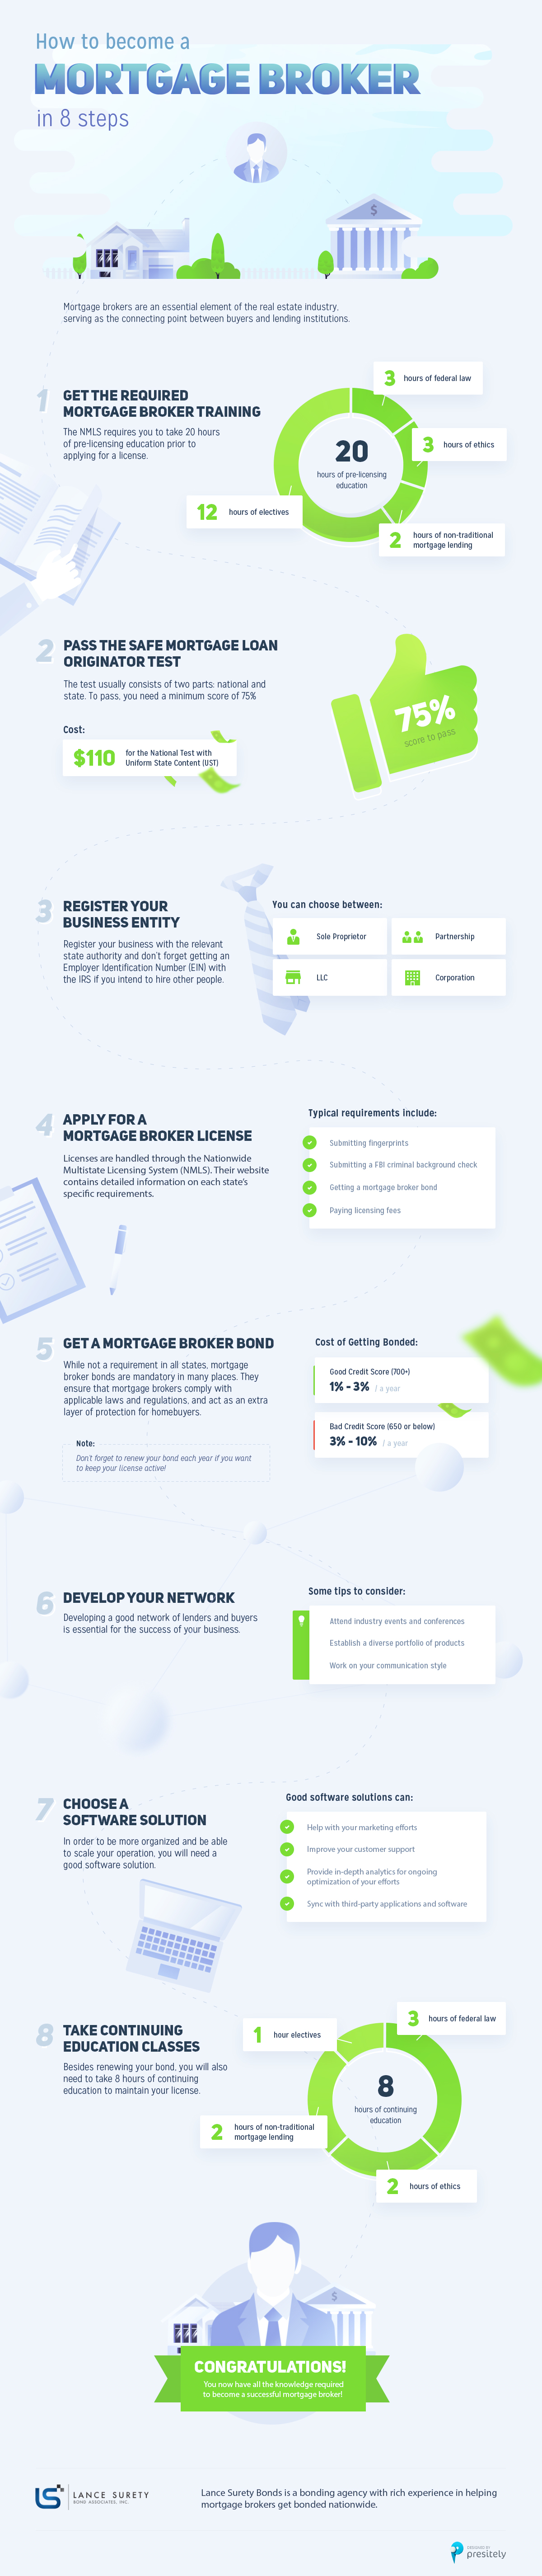 How to Become a Mortgage Broker Infographic